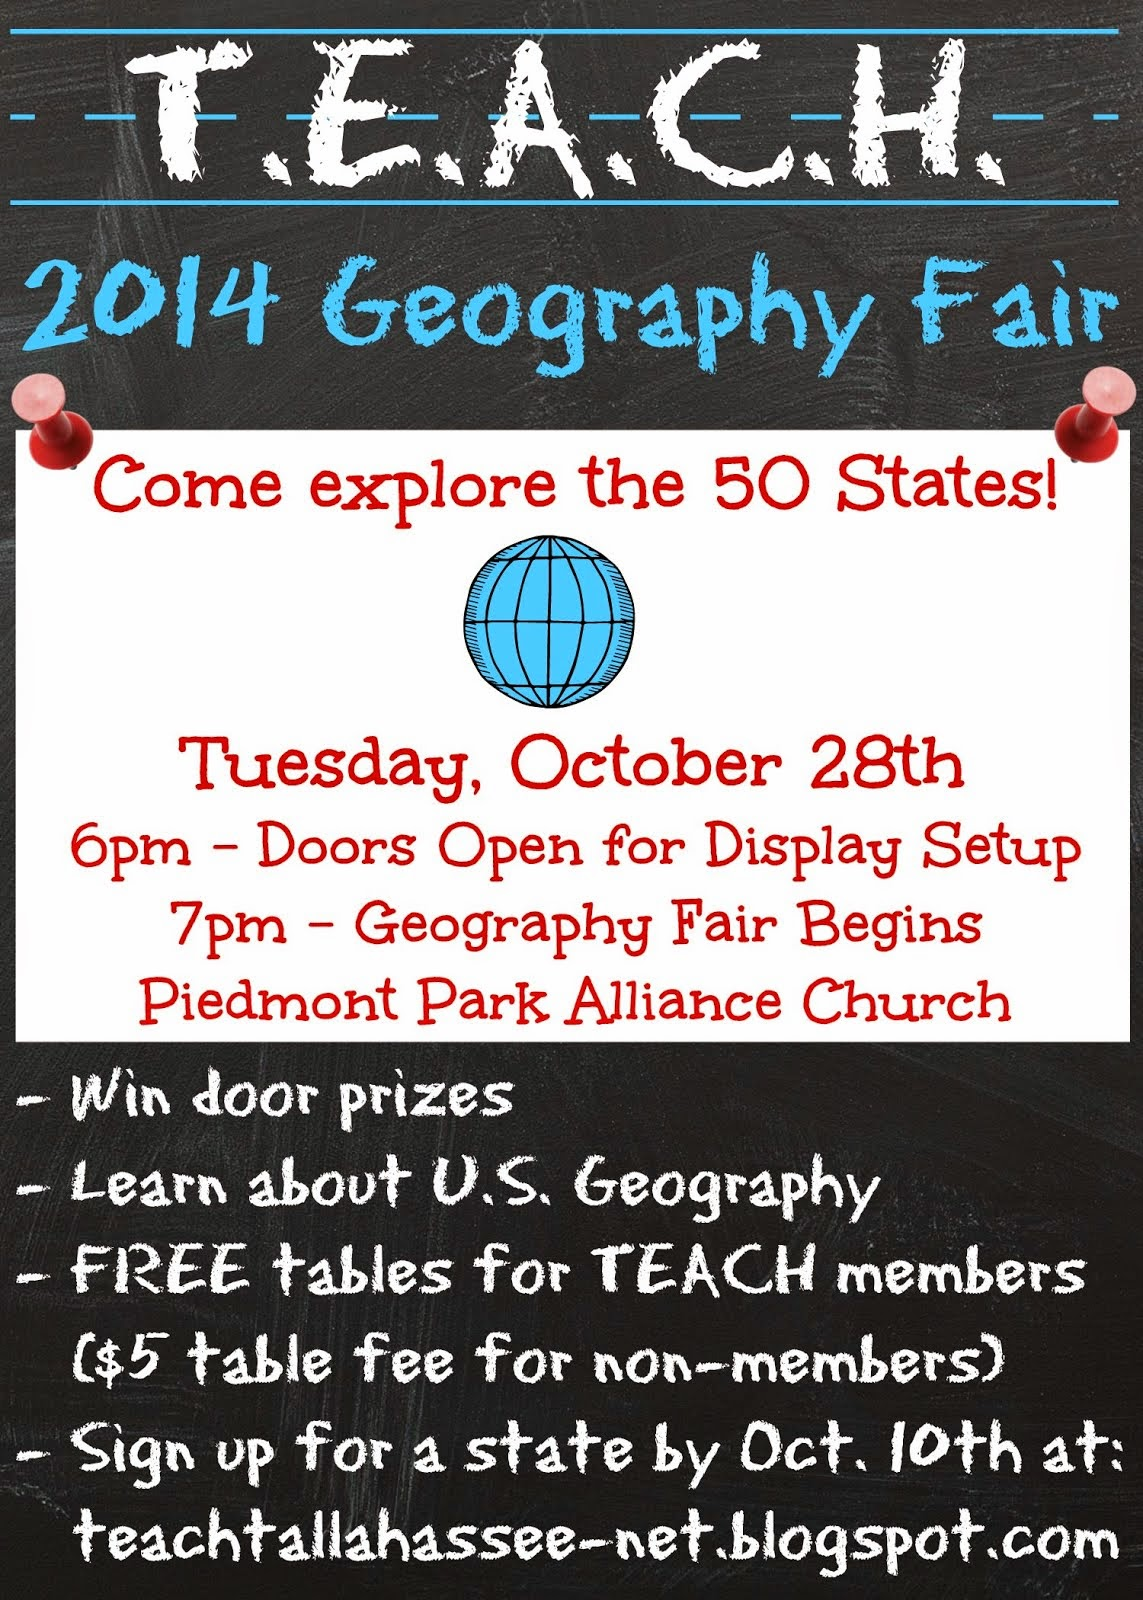 TEACH 2014 Geography Fair Info & Signup (Click Here)